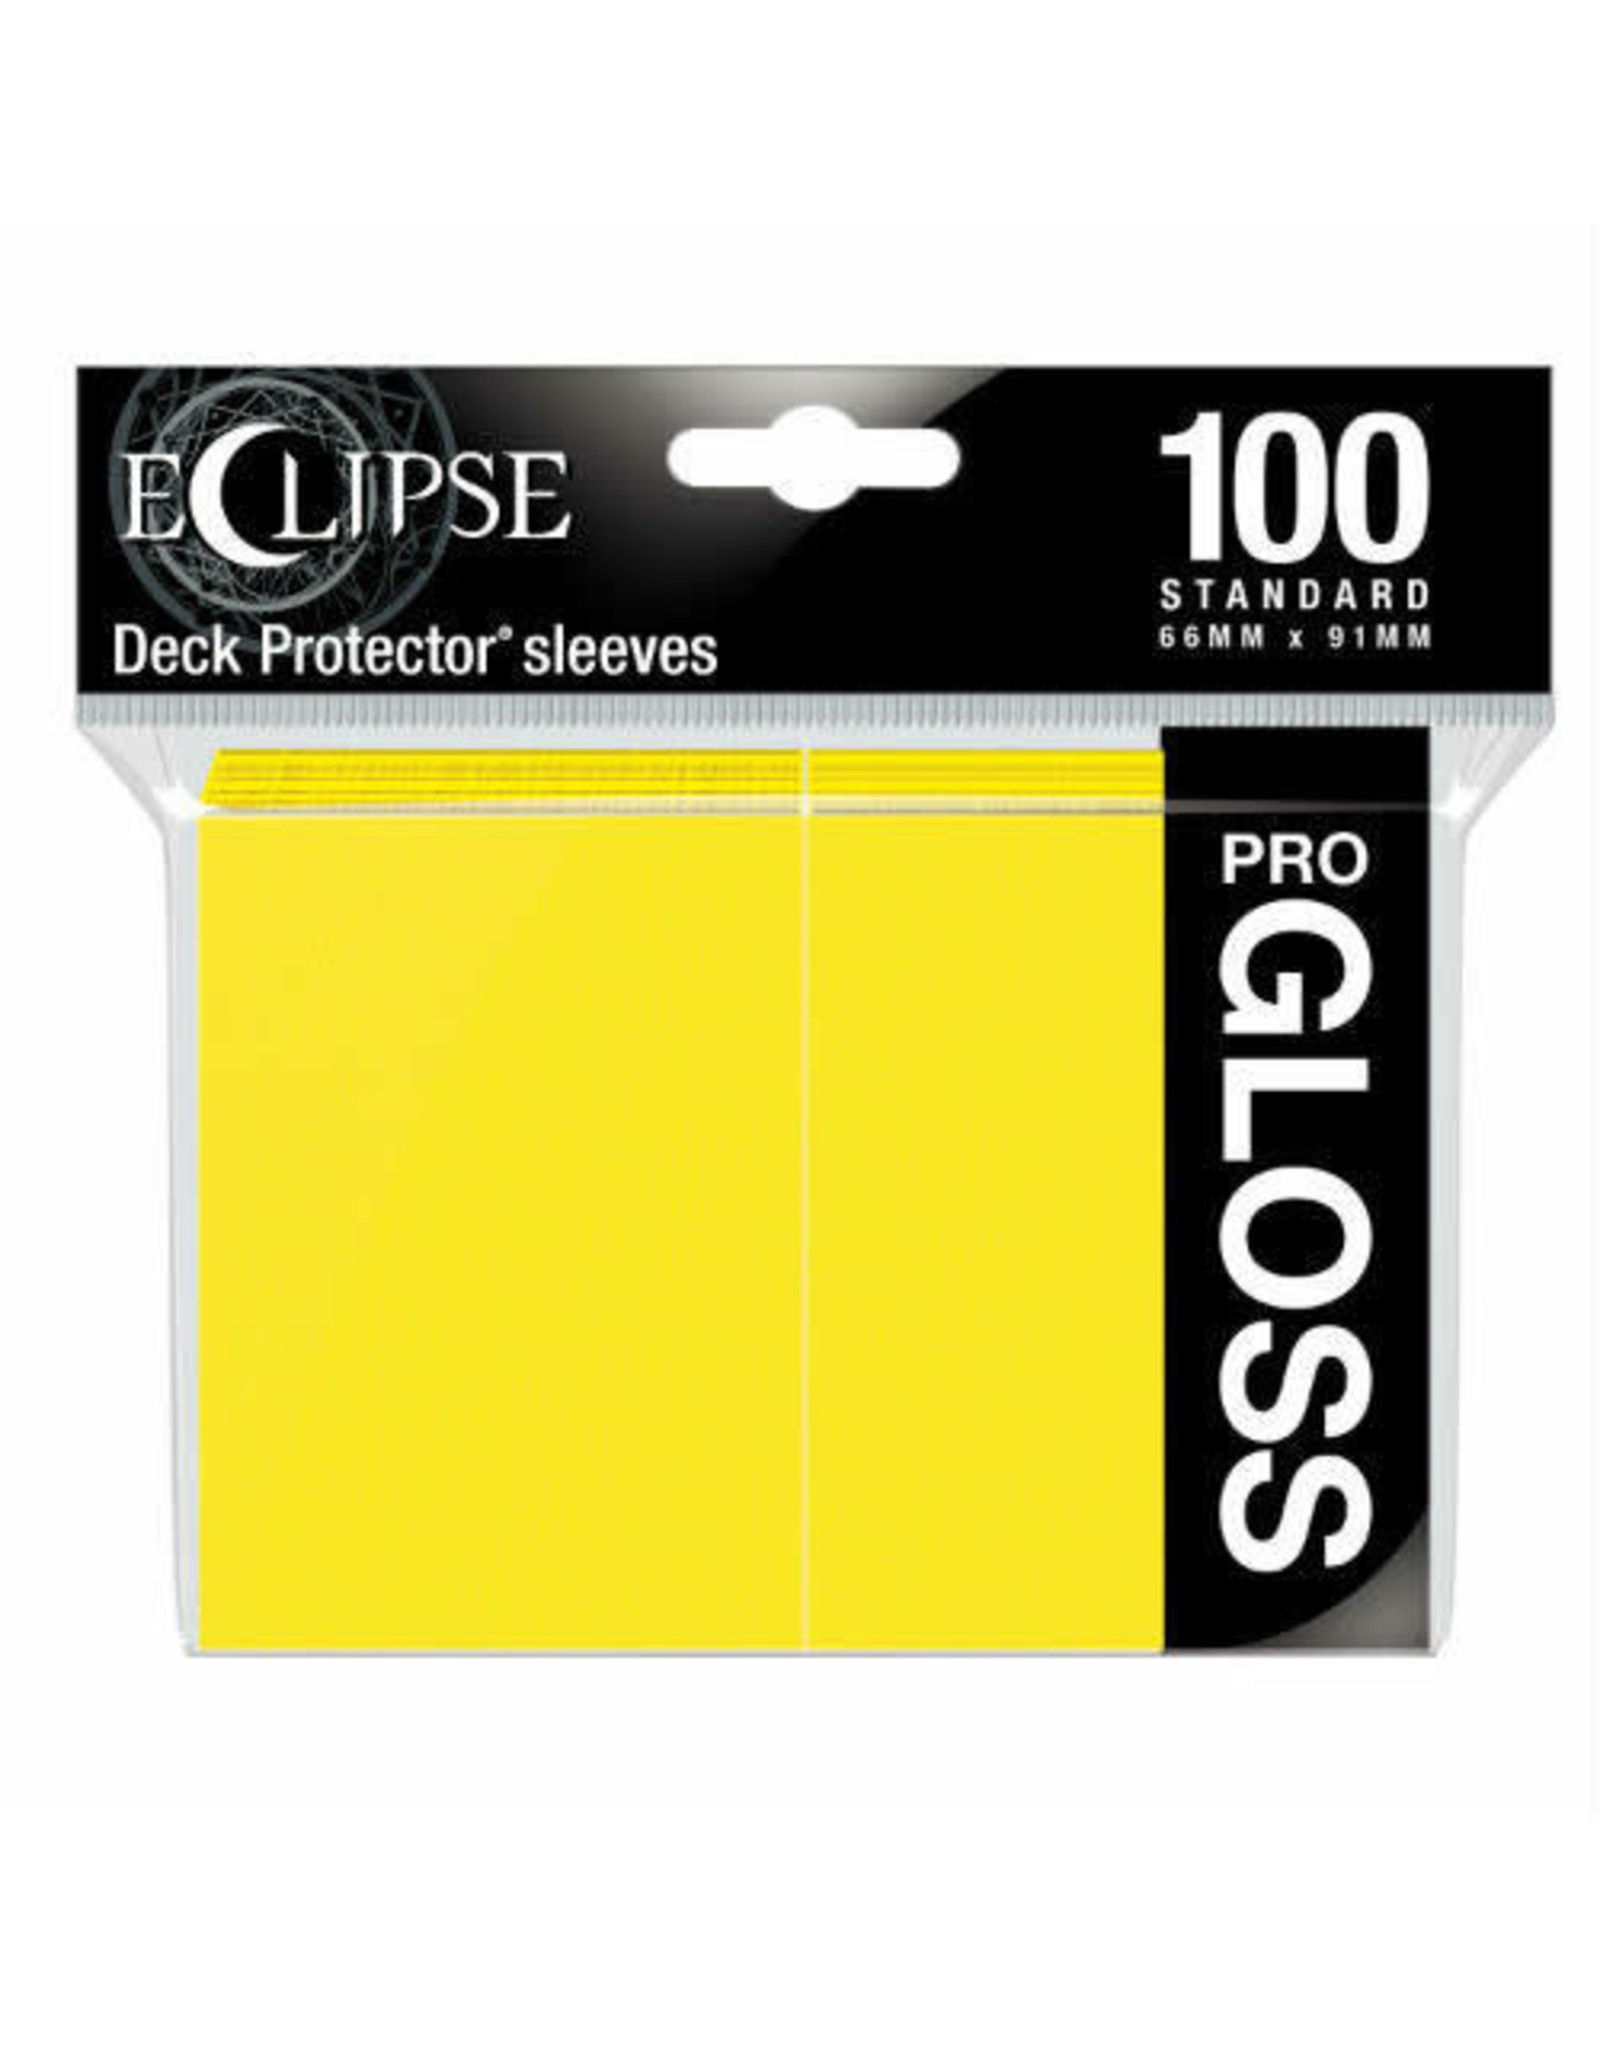 Ultra Pro DP: Eclipse Gloss: Lemon YE (100)